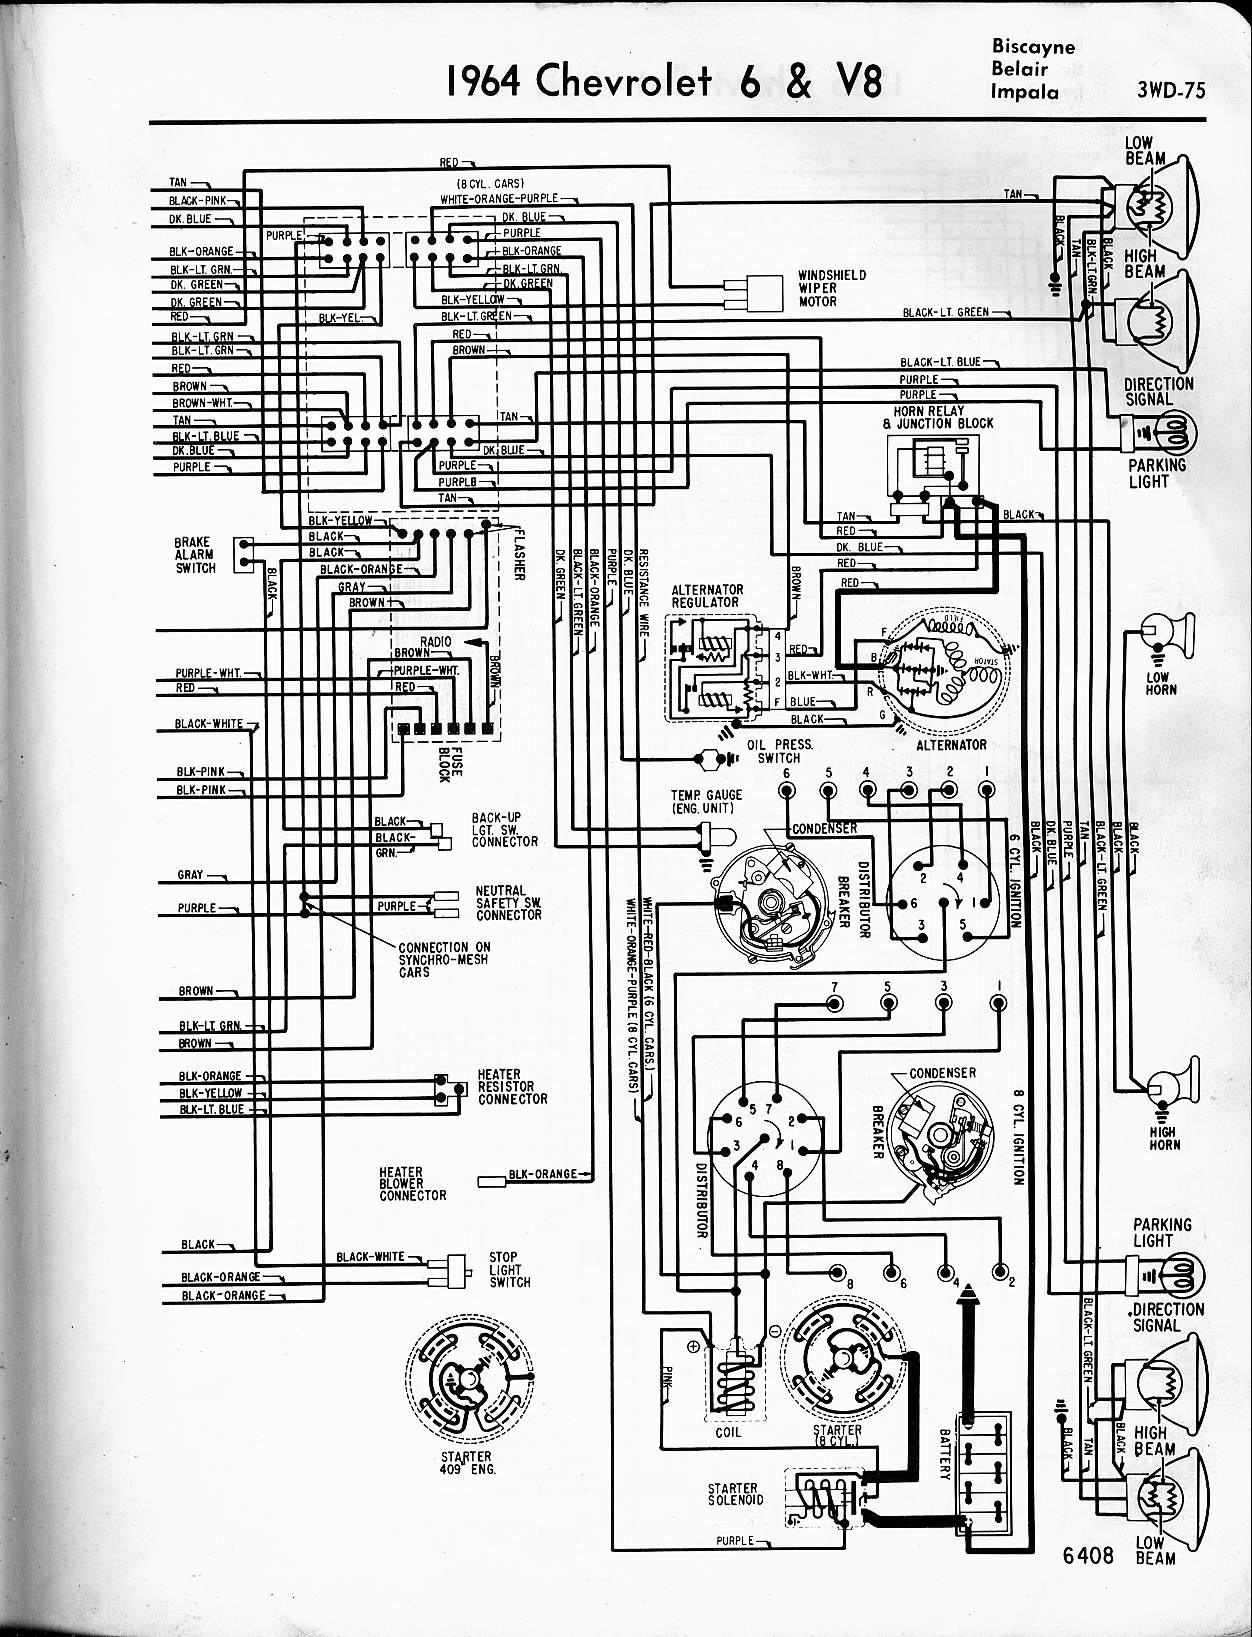 MWireChev64_3WD 075 1964 impala wiring diagram 1964 impala wiring diagram rear breaks 2001 chevy malibu ignition wiring diagram at alyssarenee.co